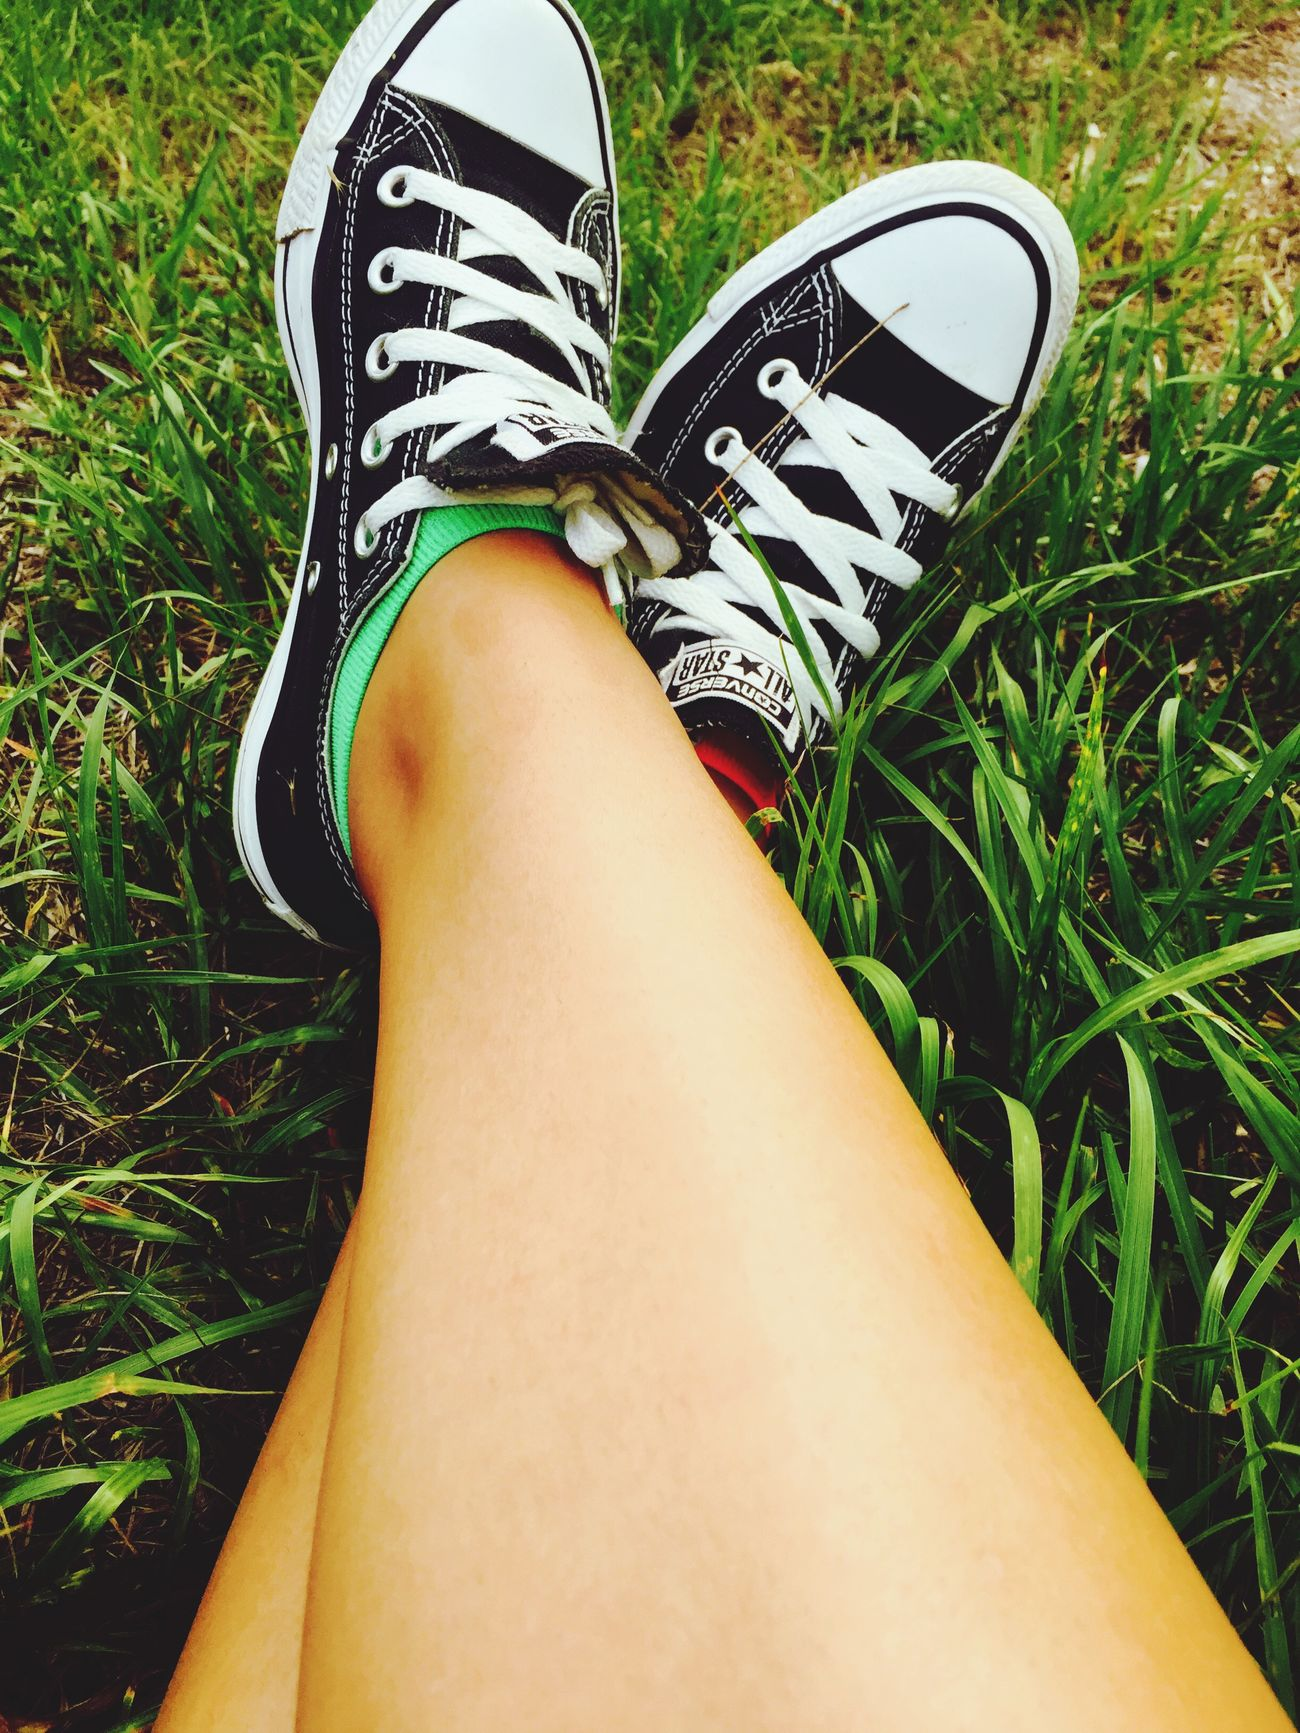 🌾 Legs Grass Nature Shoes Colorful Socks Hello World Hanging Out Relaxing Taking Photos Enjoying Life